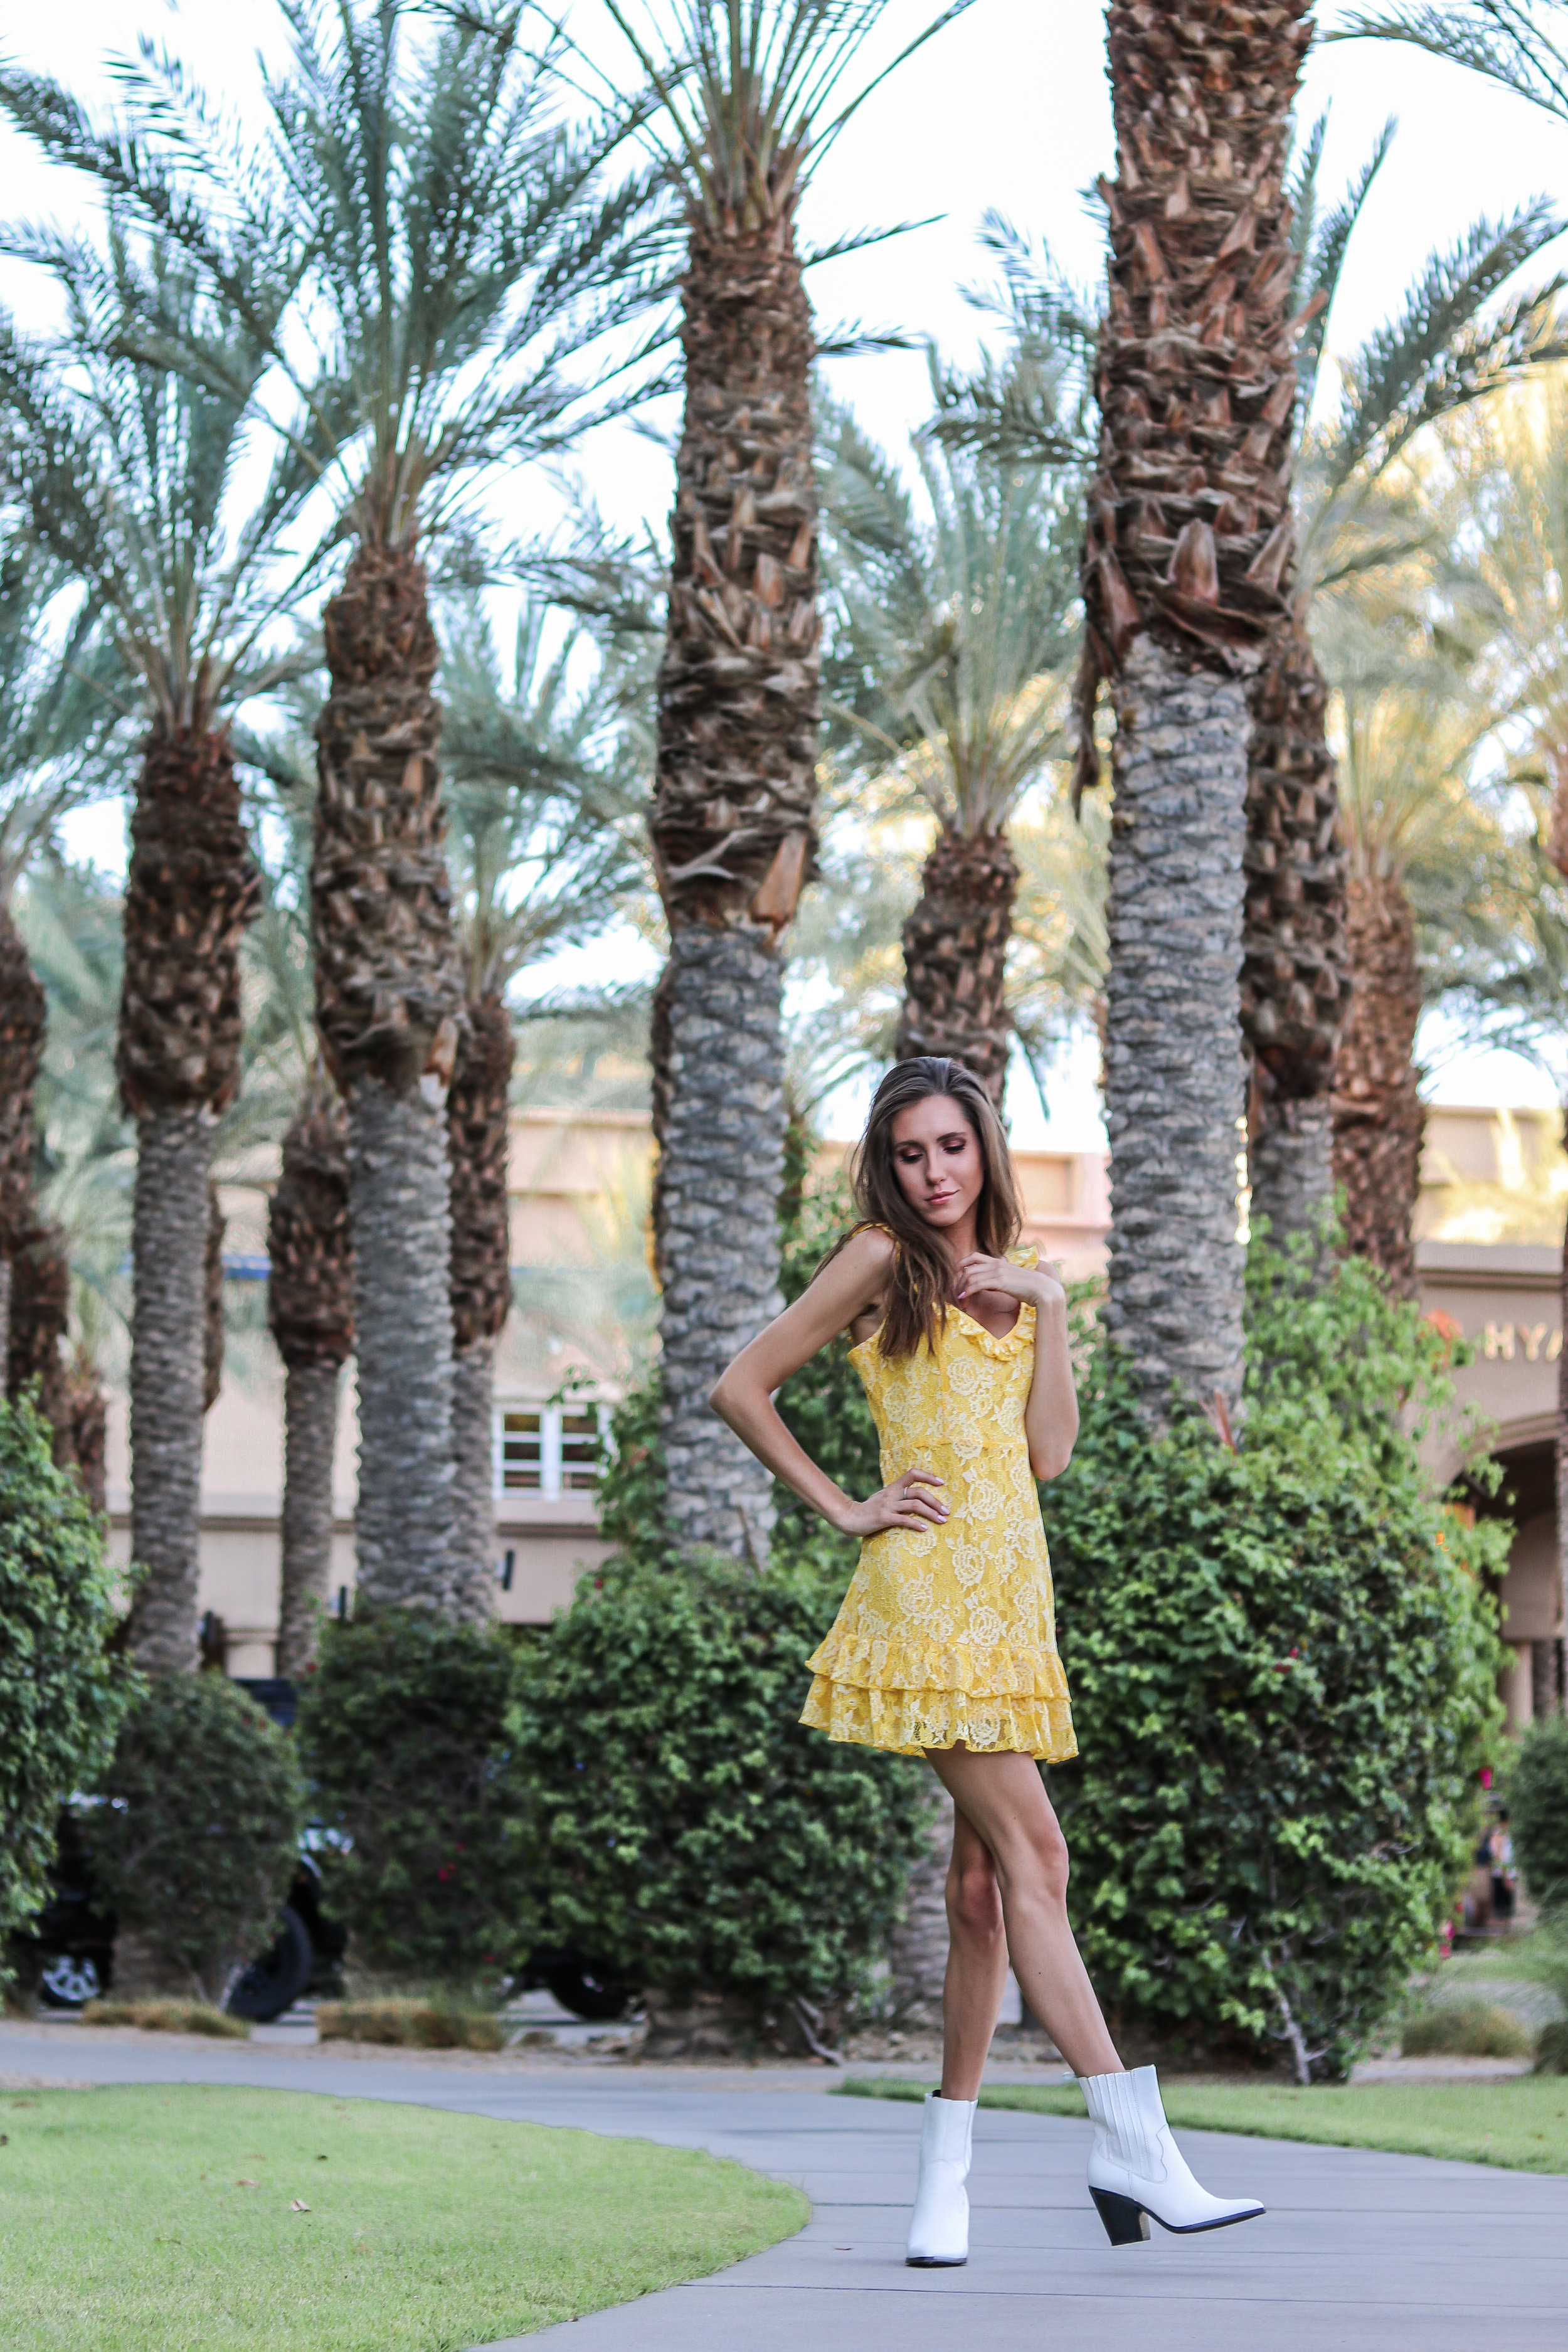 The Hungarian Brunette PALM SPRINGS TRAVEL DIARY: 4 OUTFITS WITH 2 DRESSES, 2 TOPS AND 1 SKIRT